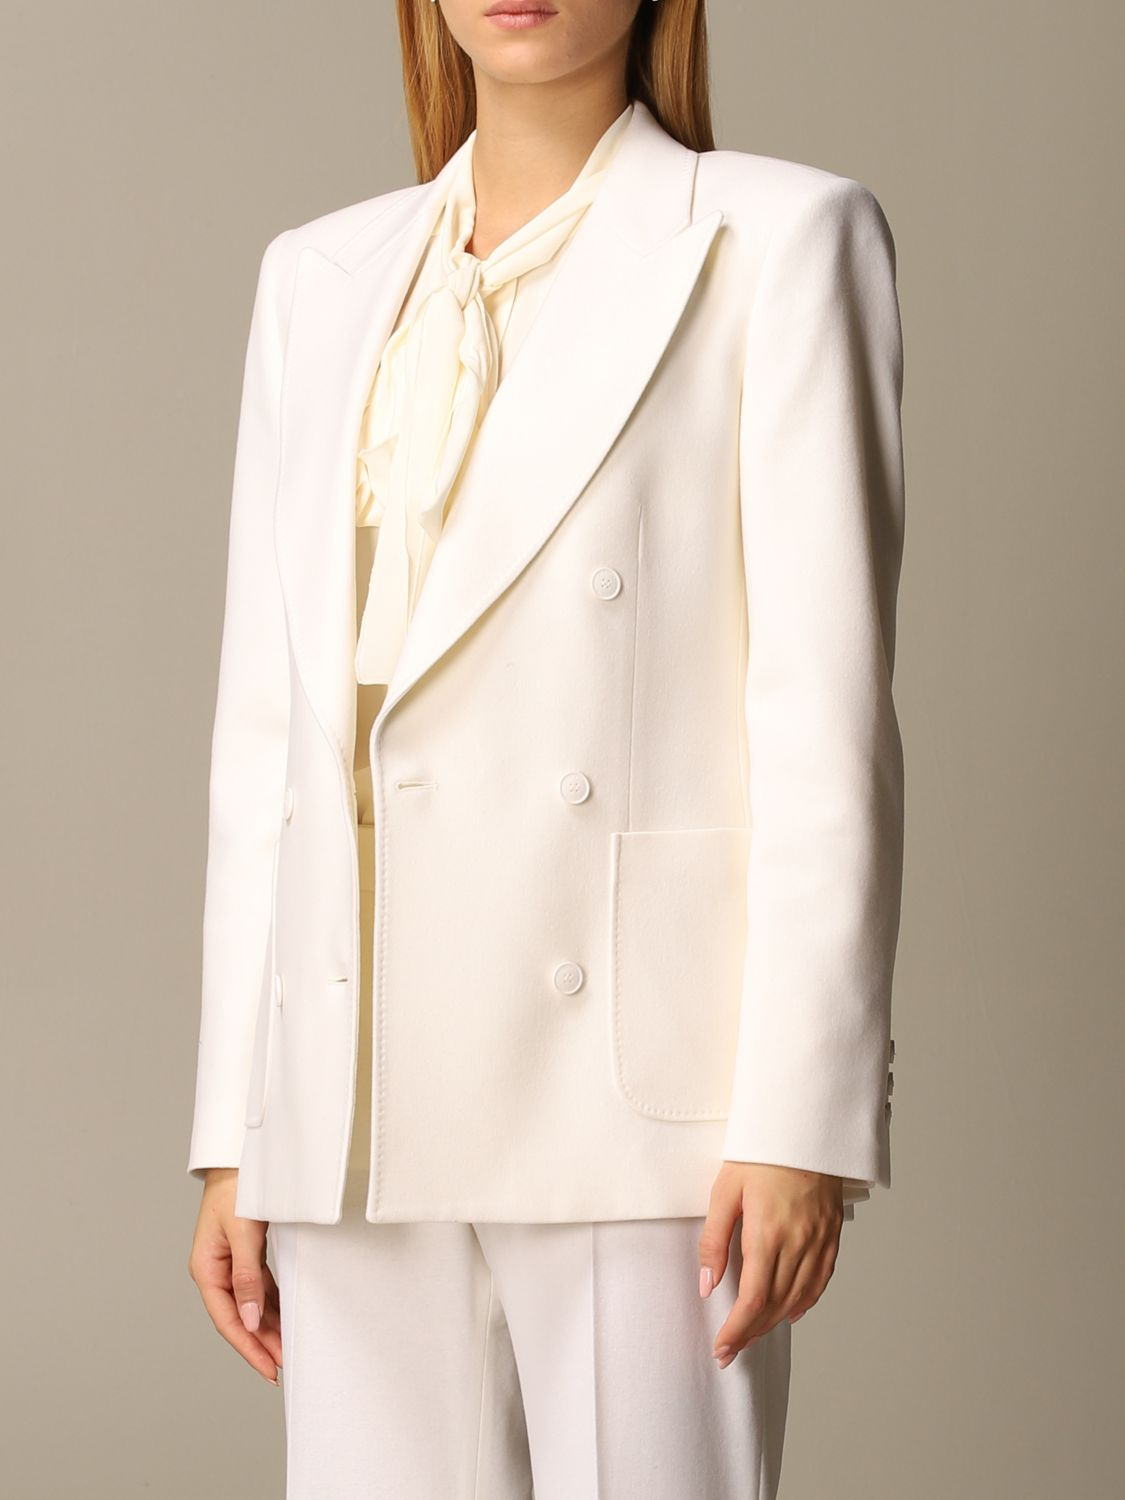 Jacket Alberta Ferretti: Jacket women Alberta Ferretti yellow cream 4